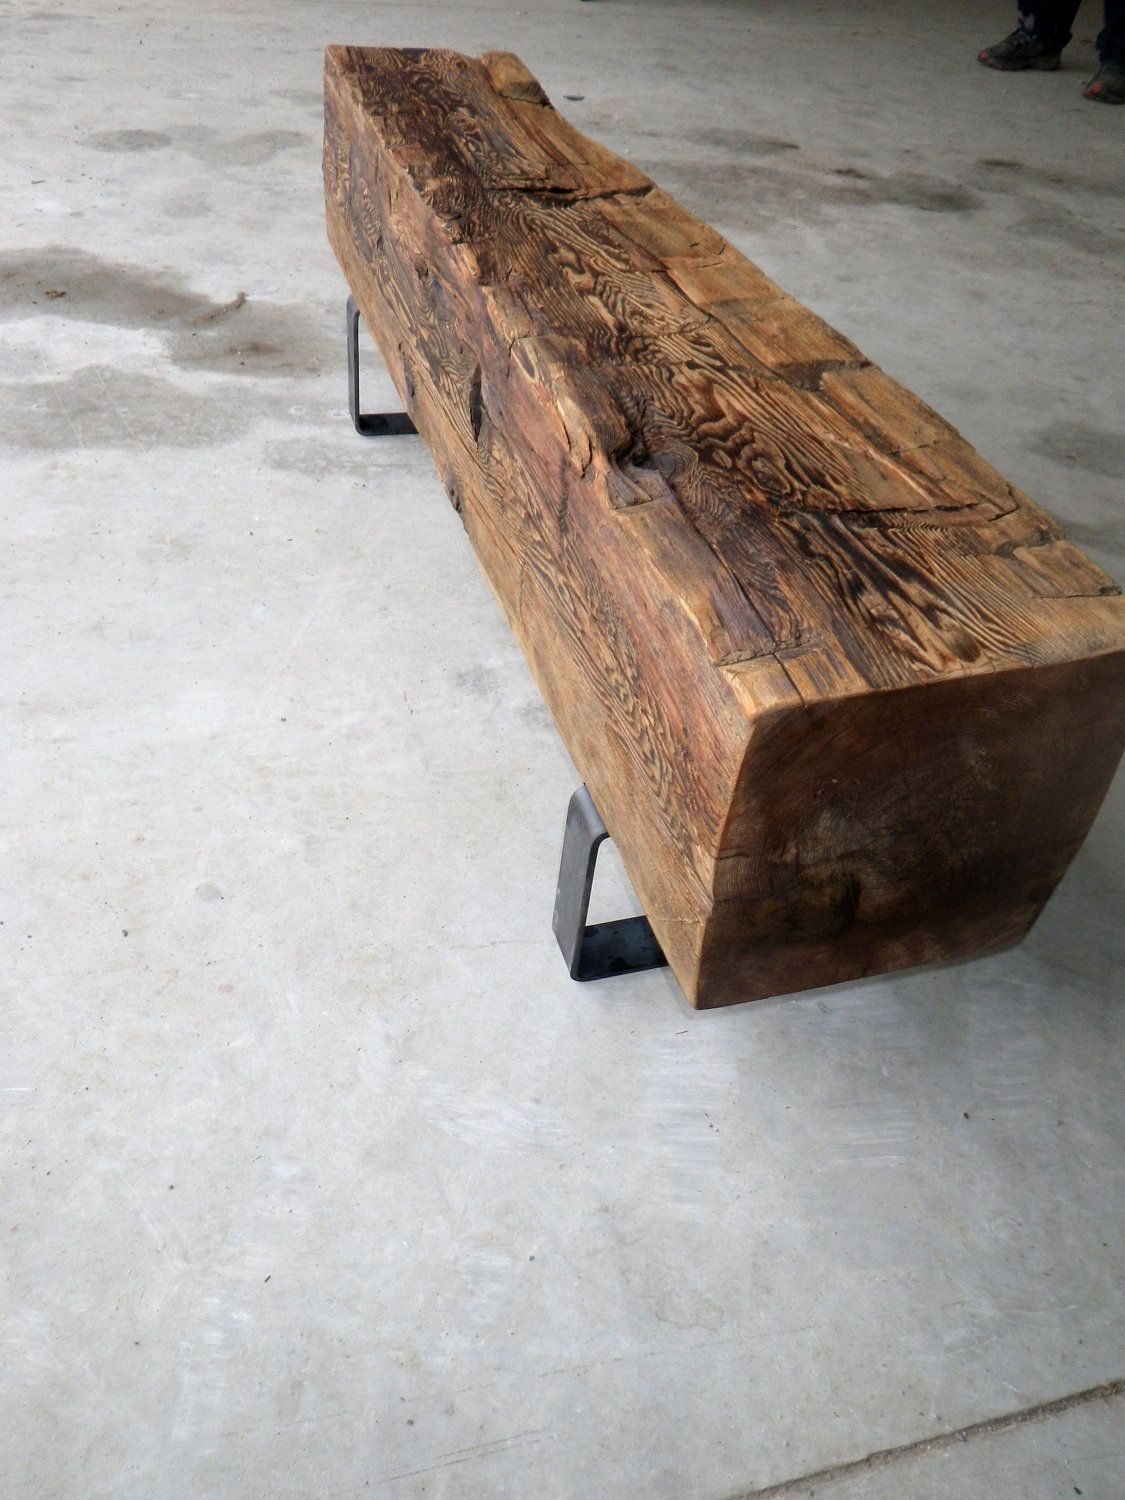 Reclaimed Barn Beam Bench 275 00 Via Etsy Altholz Bänke Altholz Alter Holztisch